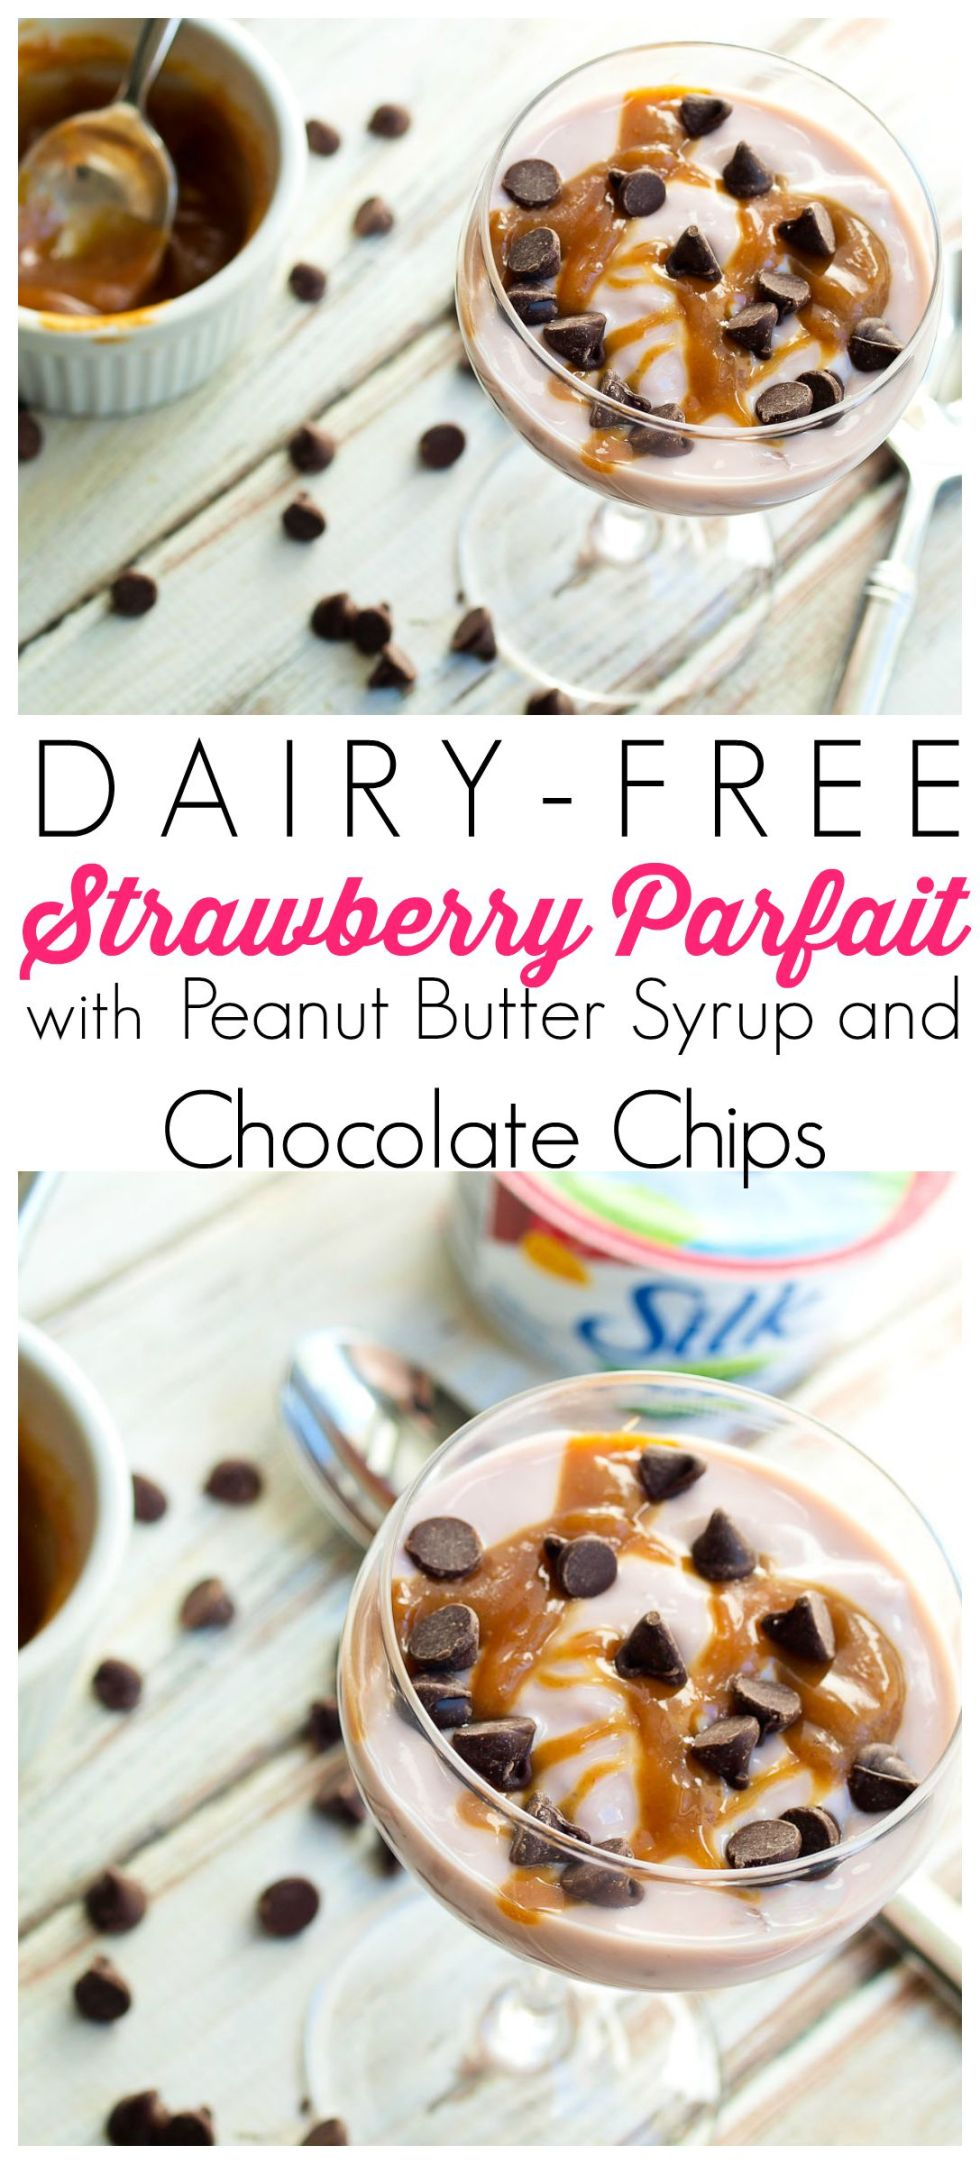 We used Silk Dairy-Free Yogurt Alternative to make these Strawberry Parfaits with Peanut Butter Syrup and Chocolate Chips. This is great as a special treat snack or dessert! The syrup takes 1 minute to whip up so this is super quick+easy!